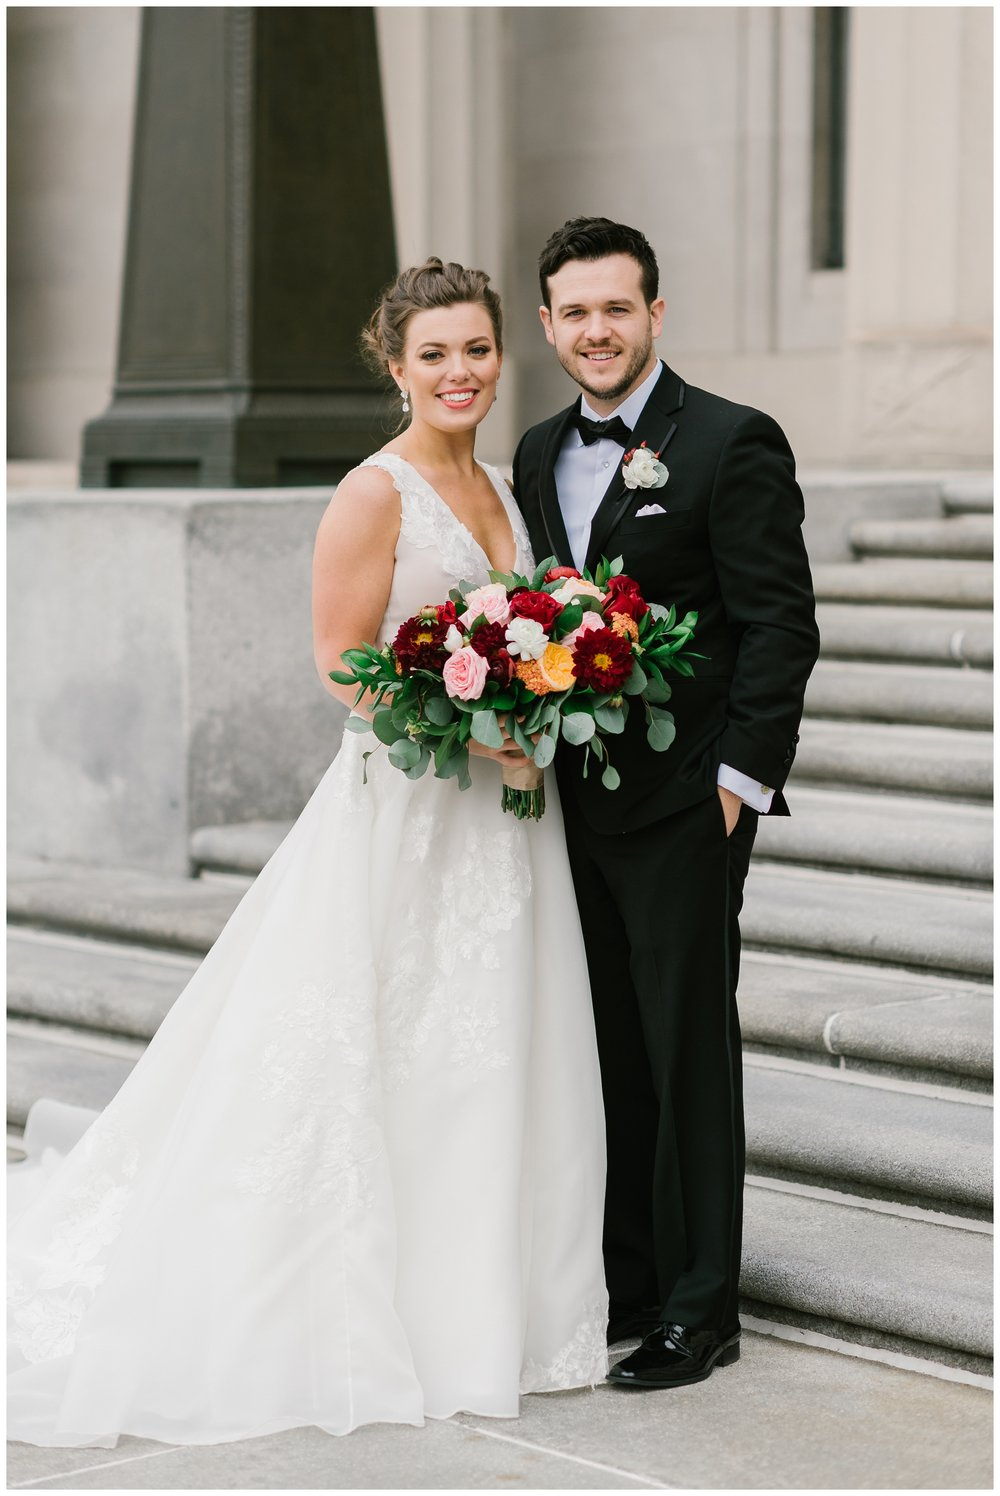 Rebecca_Shehorn_Photography_Indianapolis_Wedding_Photographer_7733.jpg